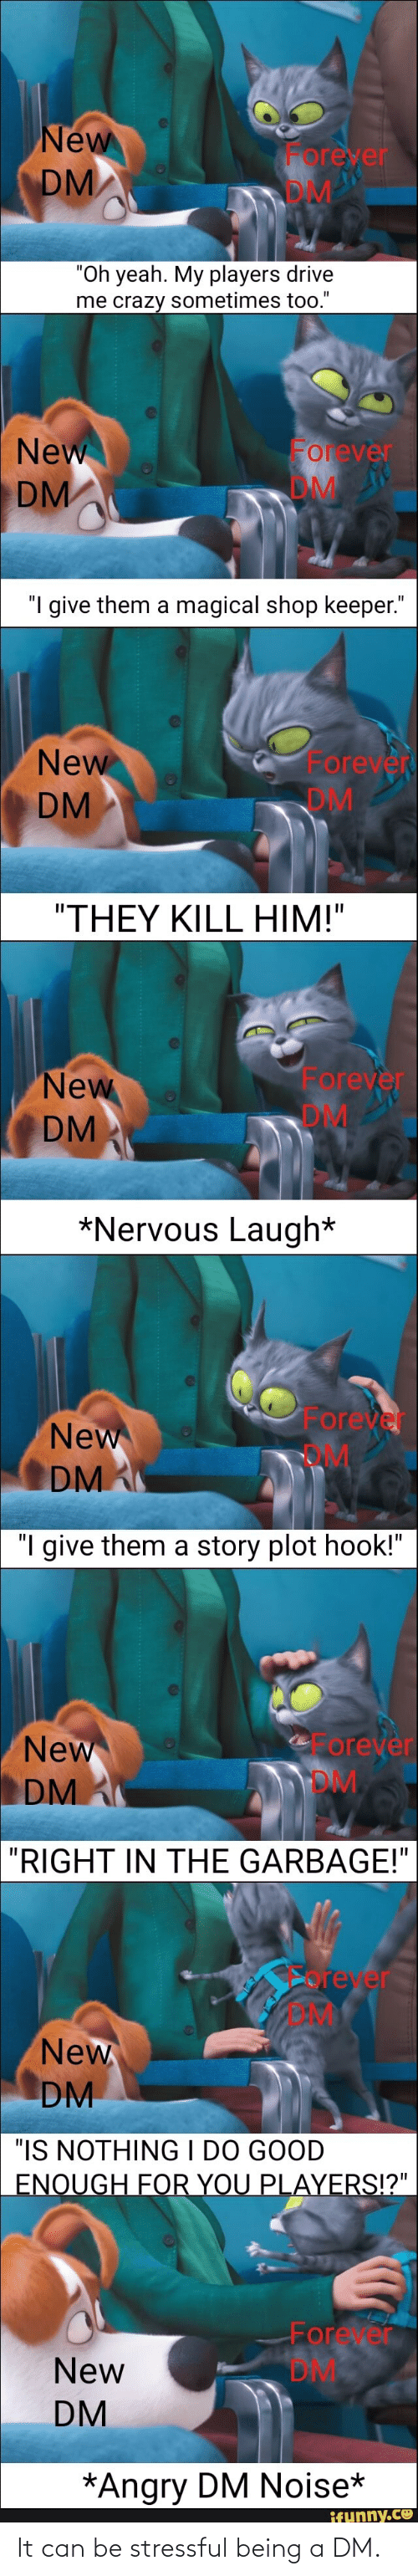 A Dm: It can be stressful being a DM.